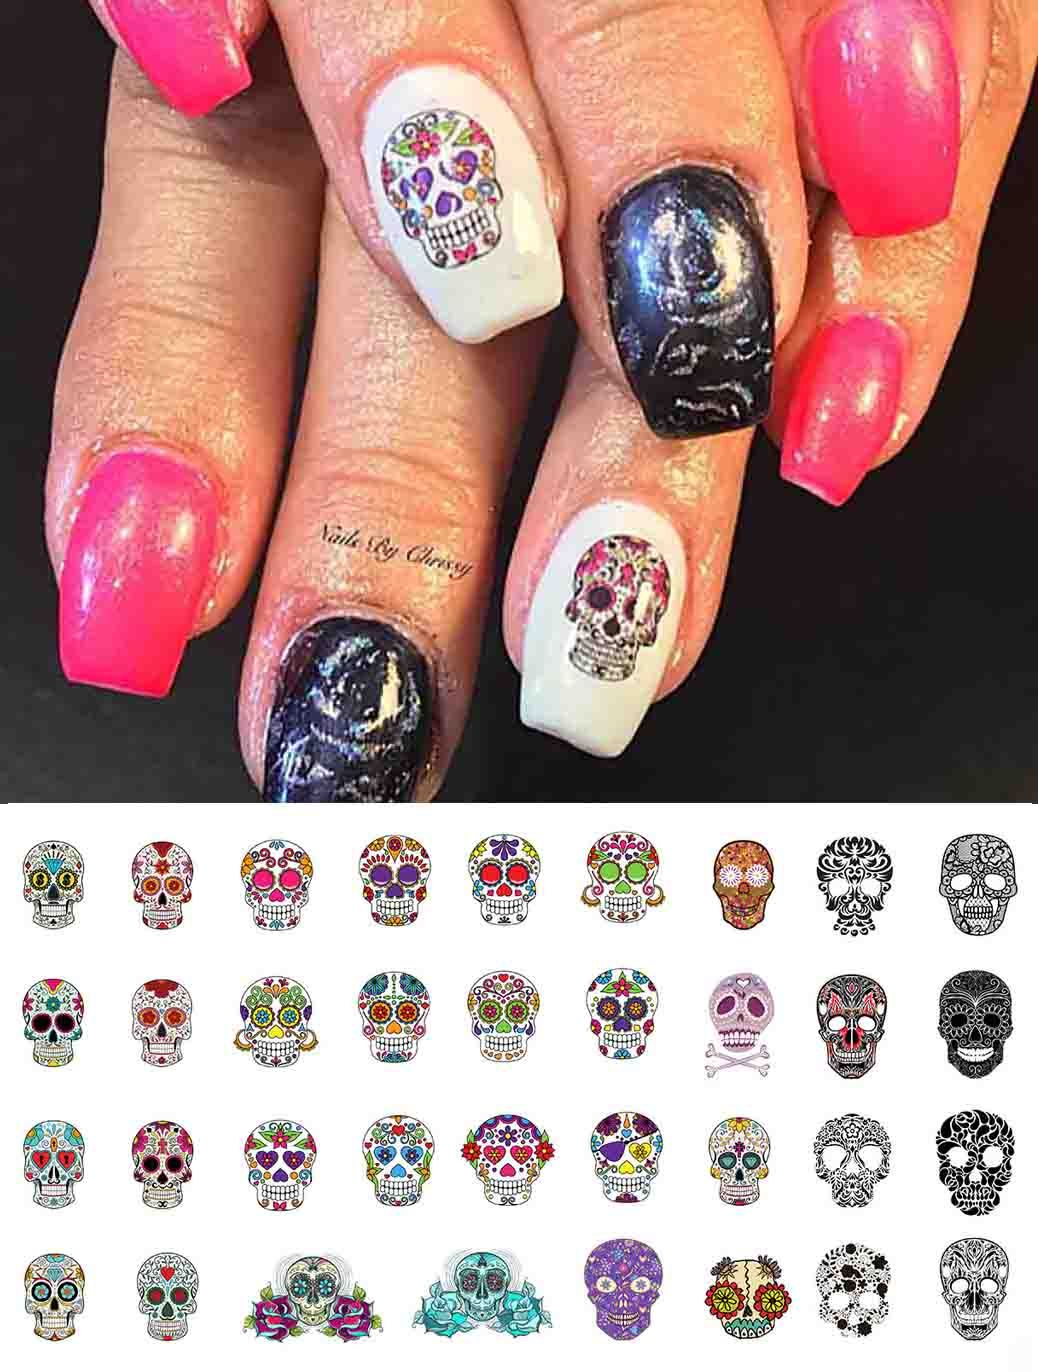 Pin By Moon Sugar Decals On Sugar Skull Nail Art Decals Pinterest